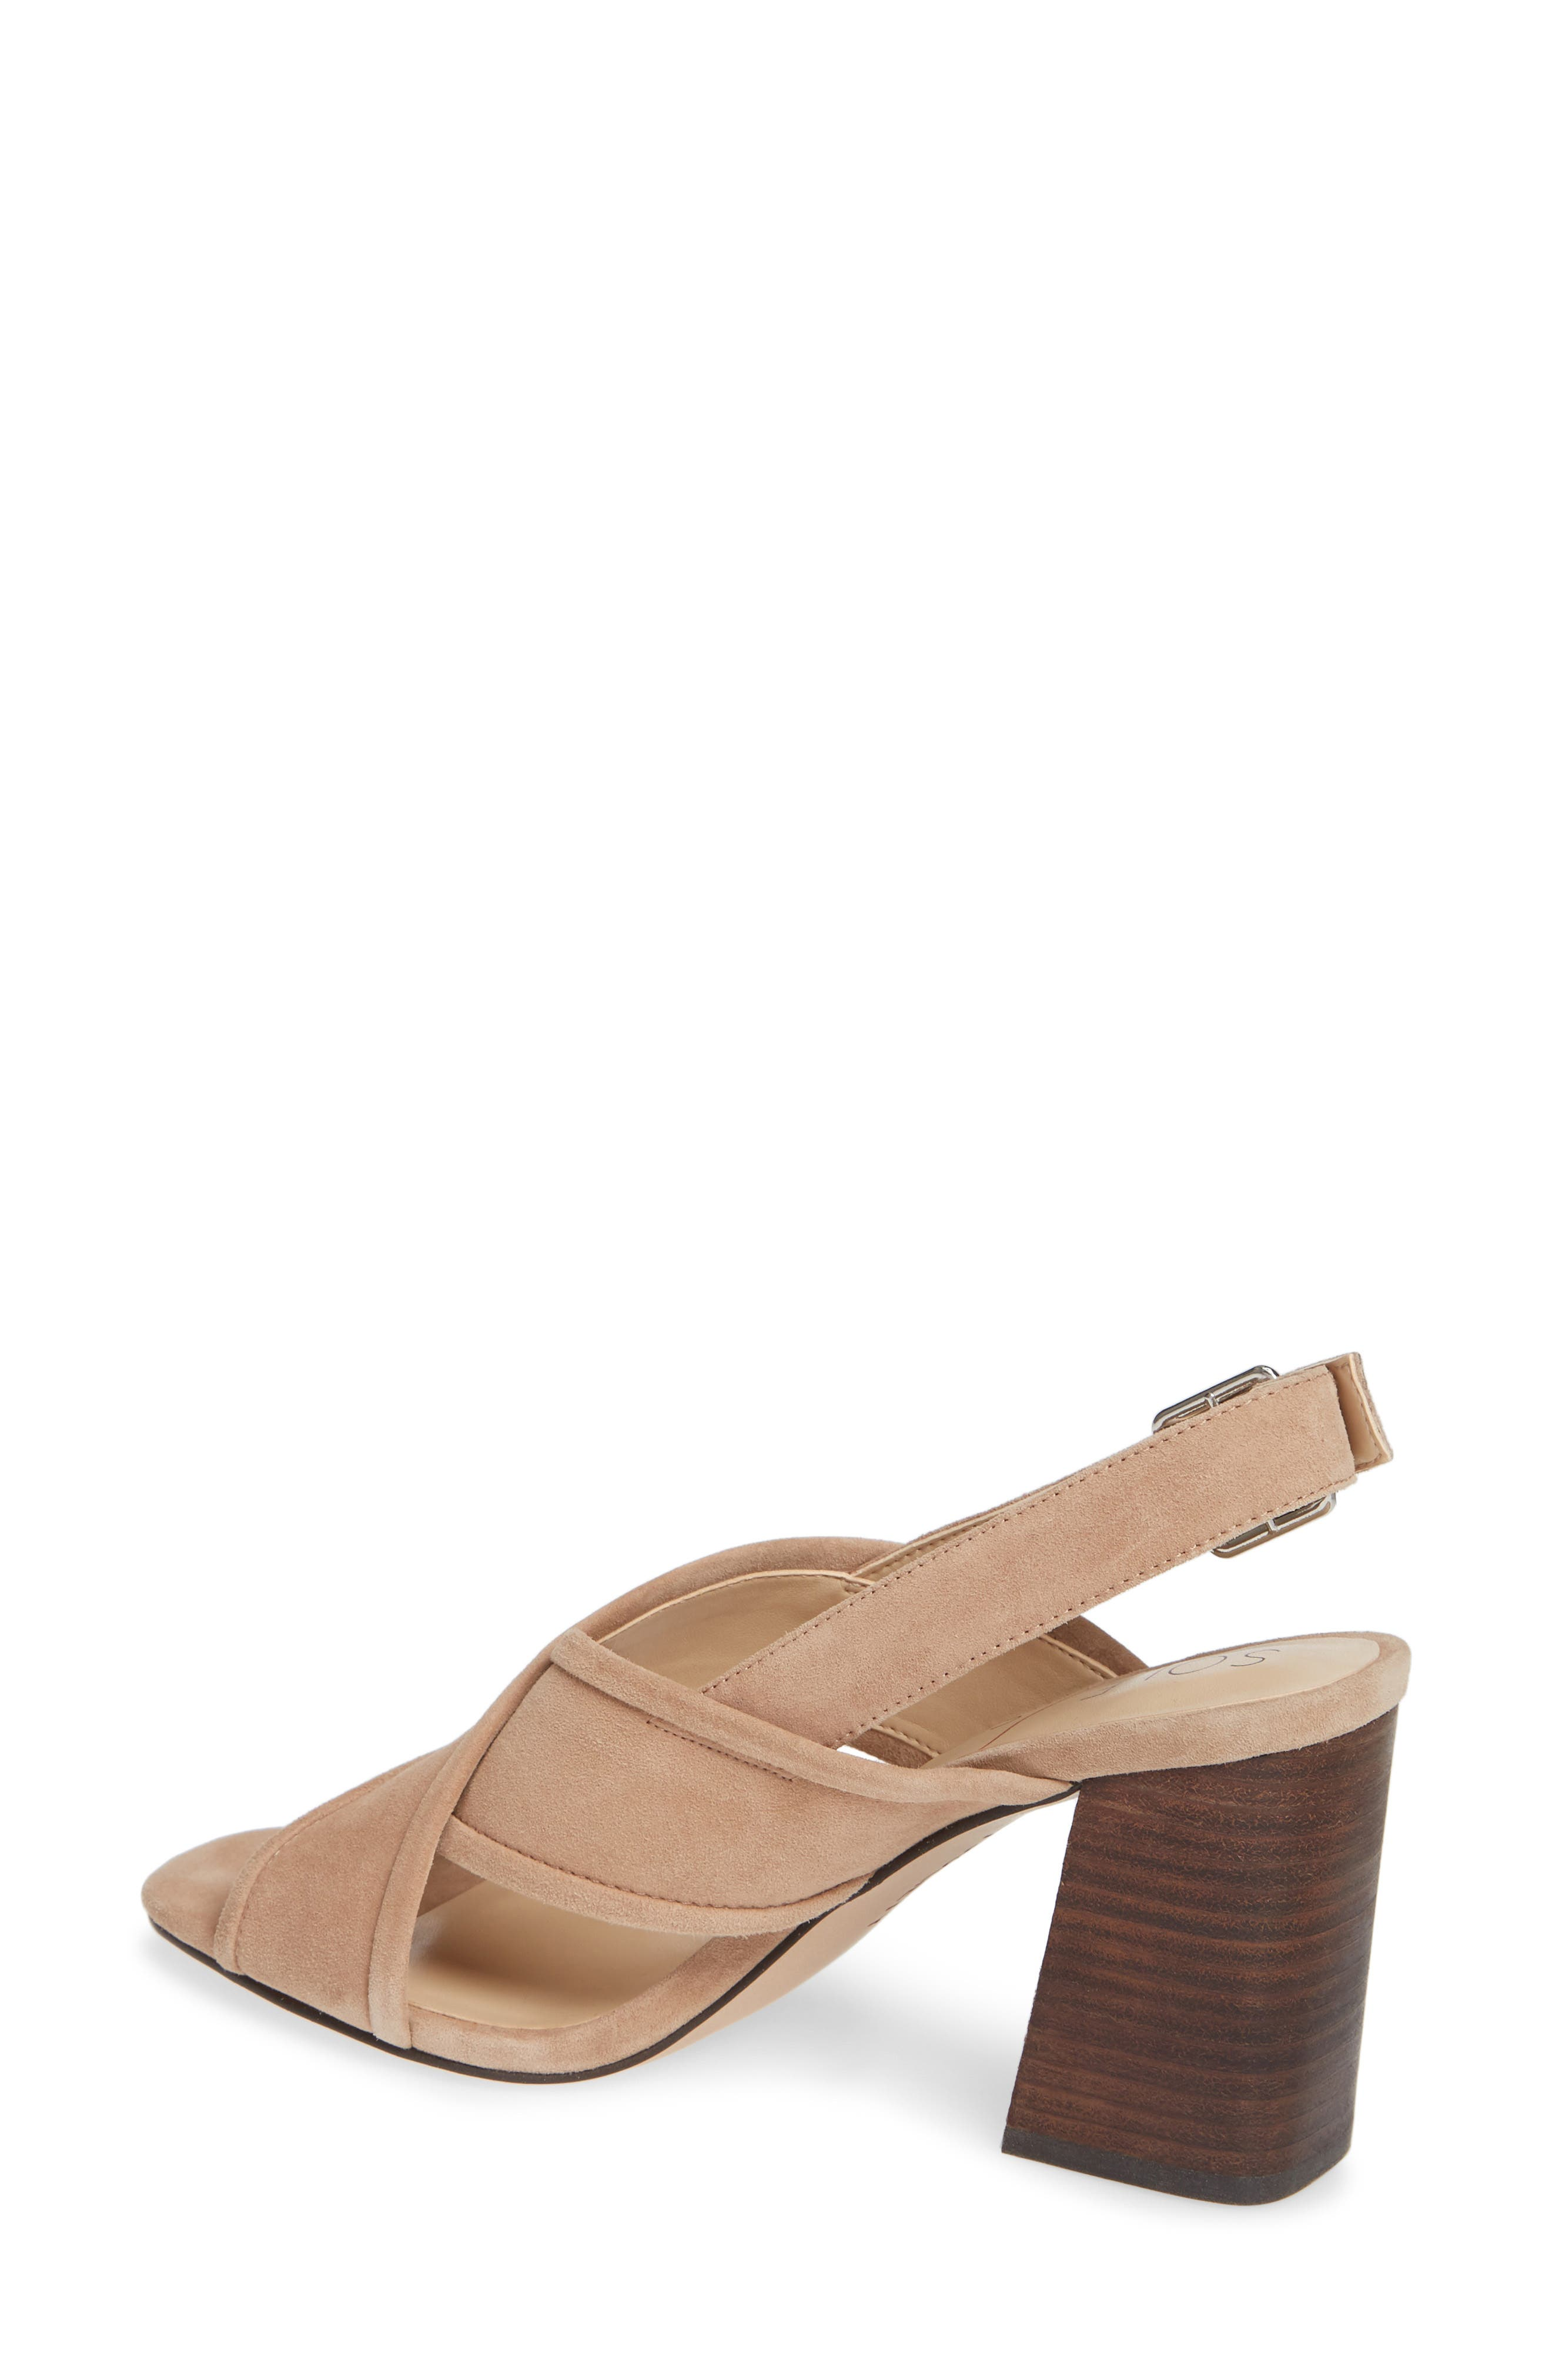 SOLE SOCIETY, Joree Slingback Sandal, Alternate thumbnail 2, color, DUSTED TAUPE SUEDE